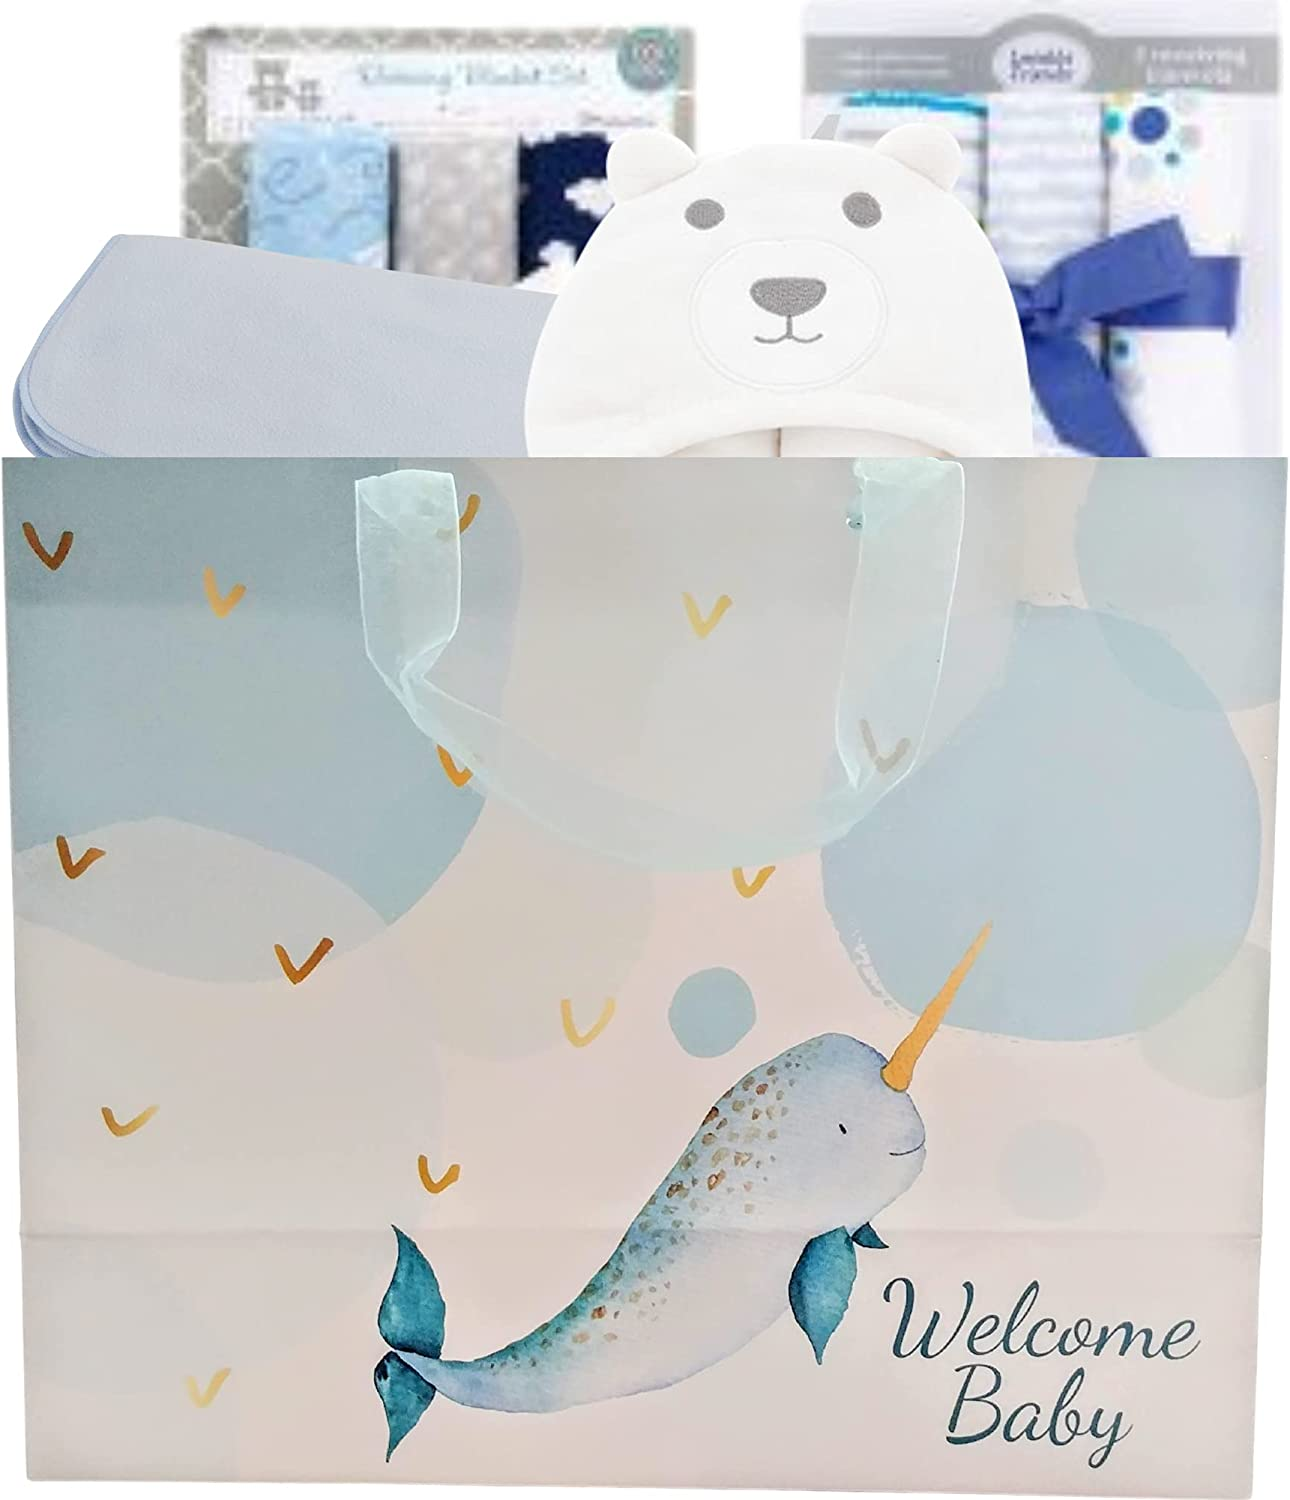 Max 58% OFF Baby Blanket Set - Starter Kit Flannel Max 81% OFF of Blankies Cotton Plu 6